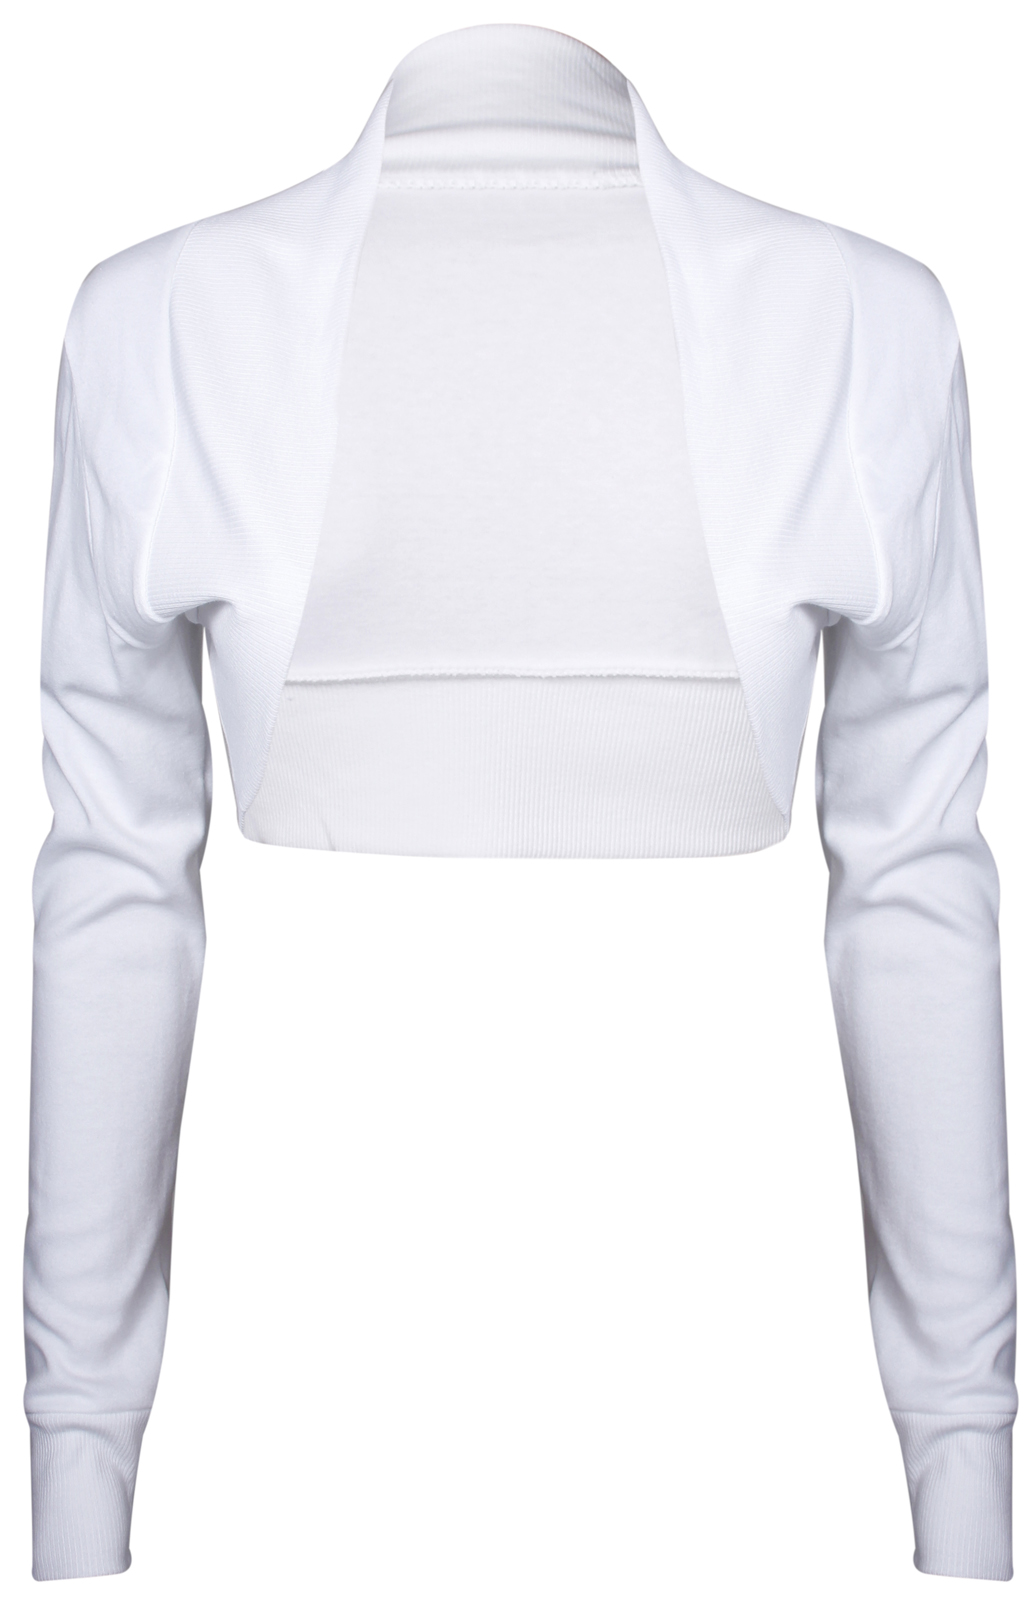 NEW-LADIES-LONG-SLEEVE-STRETCH-BOLERO-SHRUG-WOMENS-TOP thumbnail 26